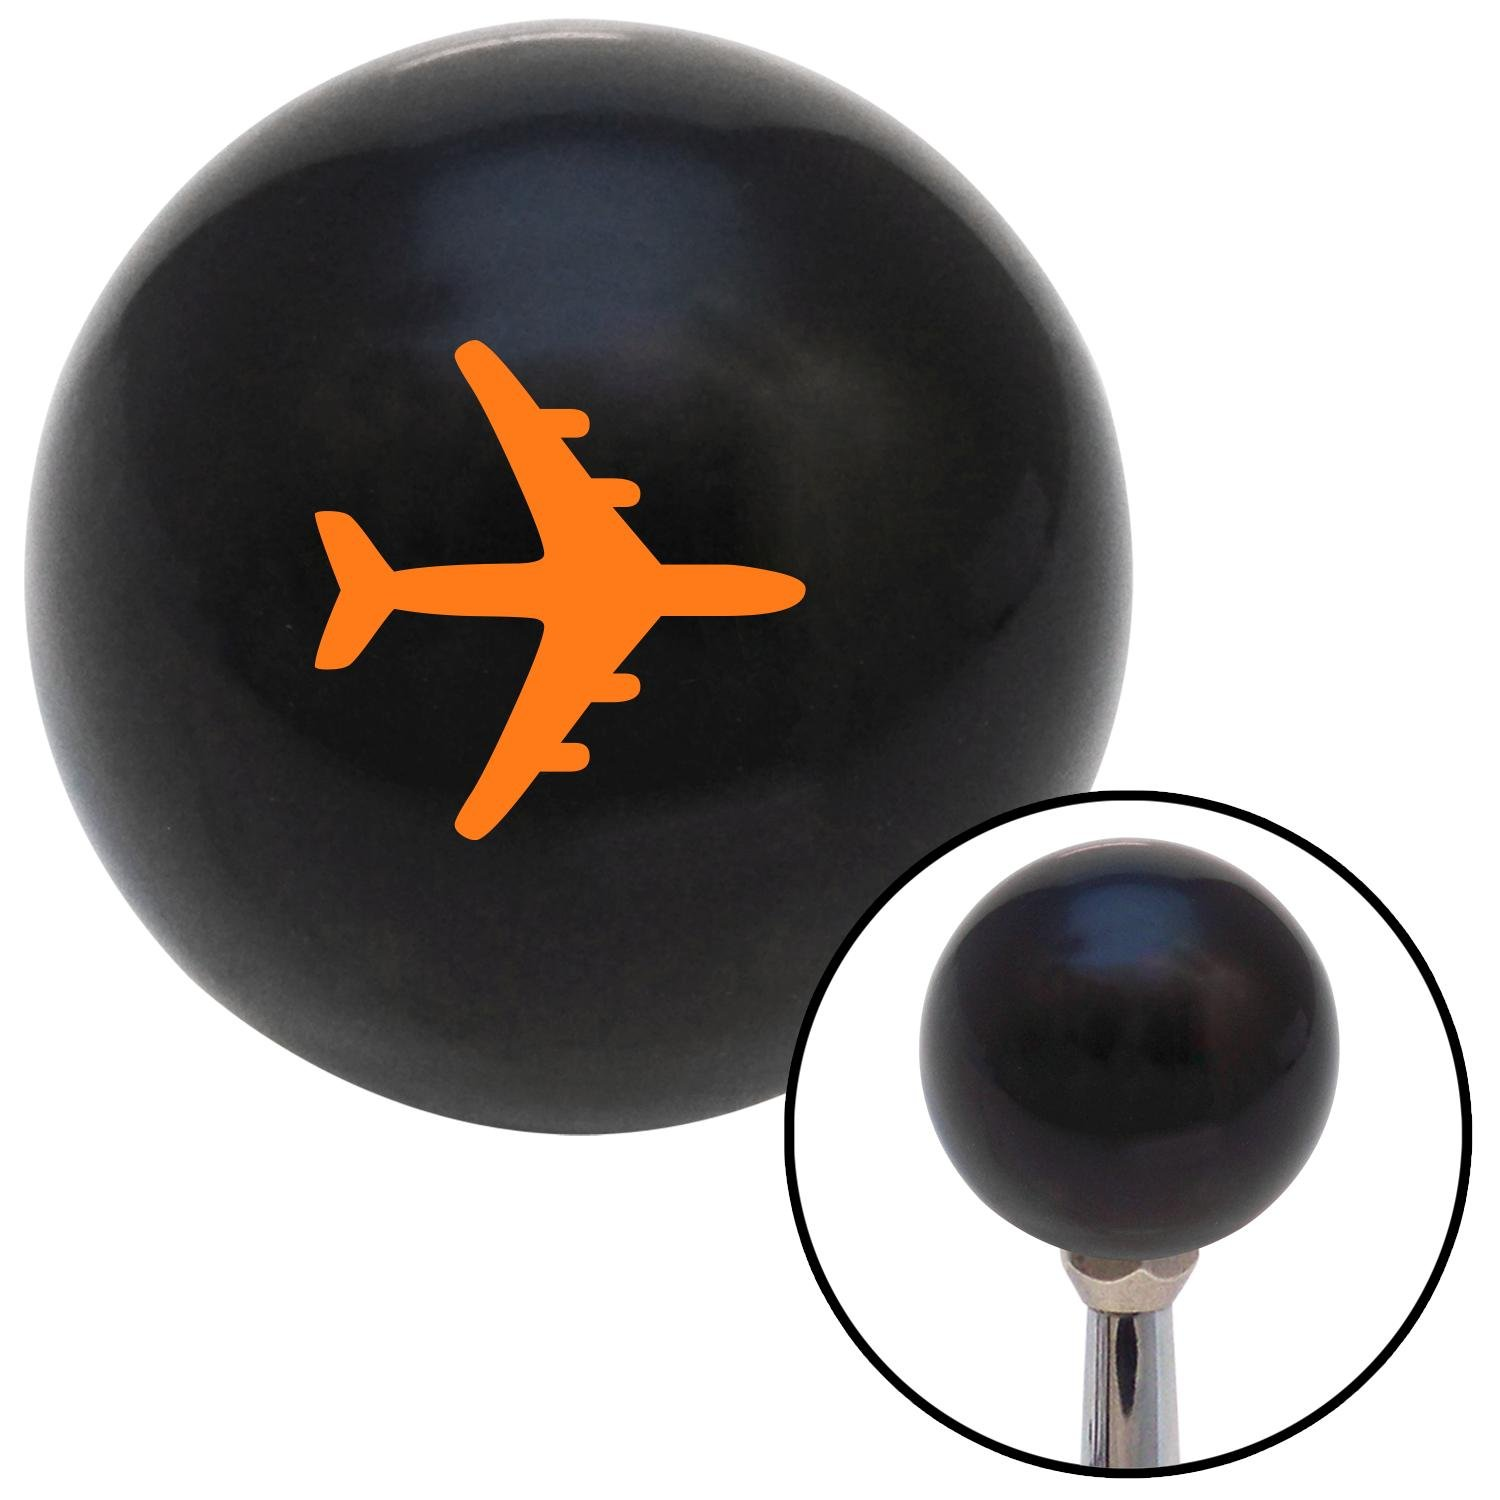 Orange Commercial Airplane American Shifter 110743 Black Shift Knob with M16 x 1.5 Insert